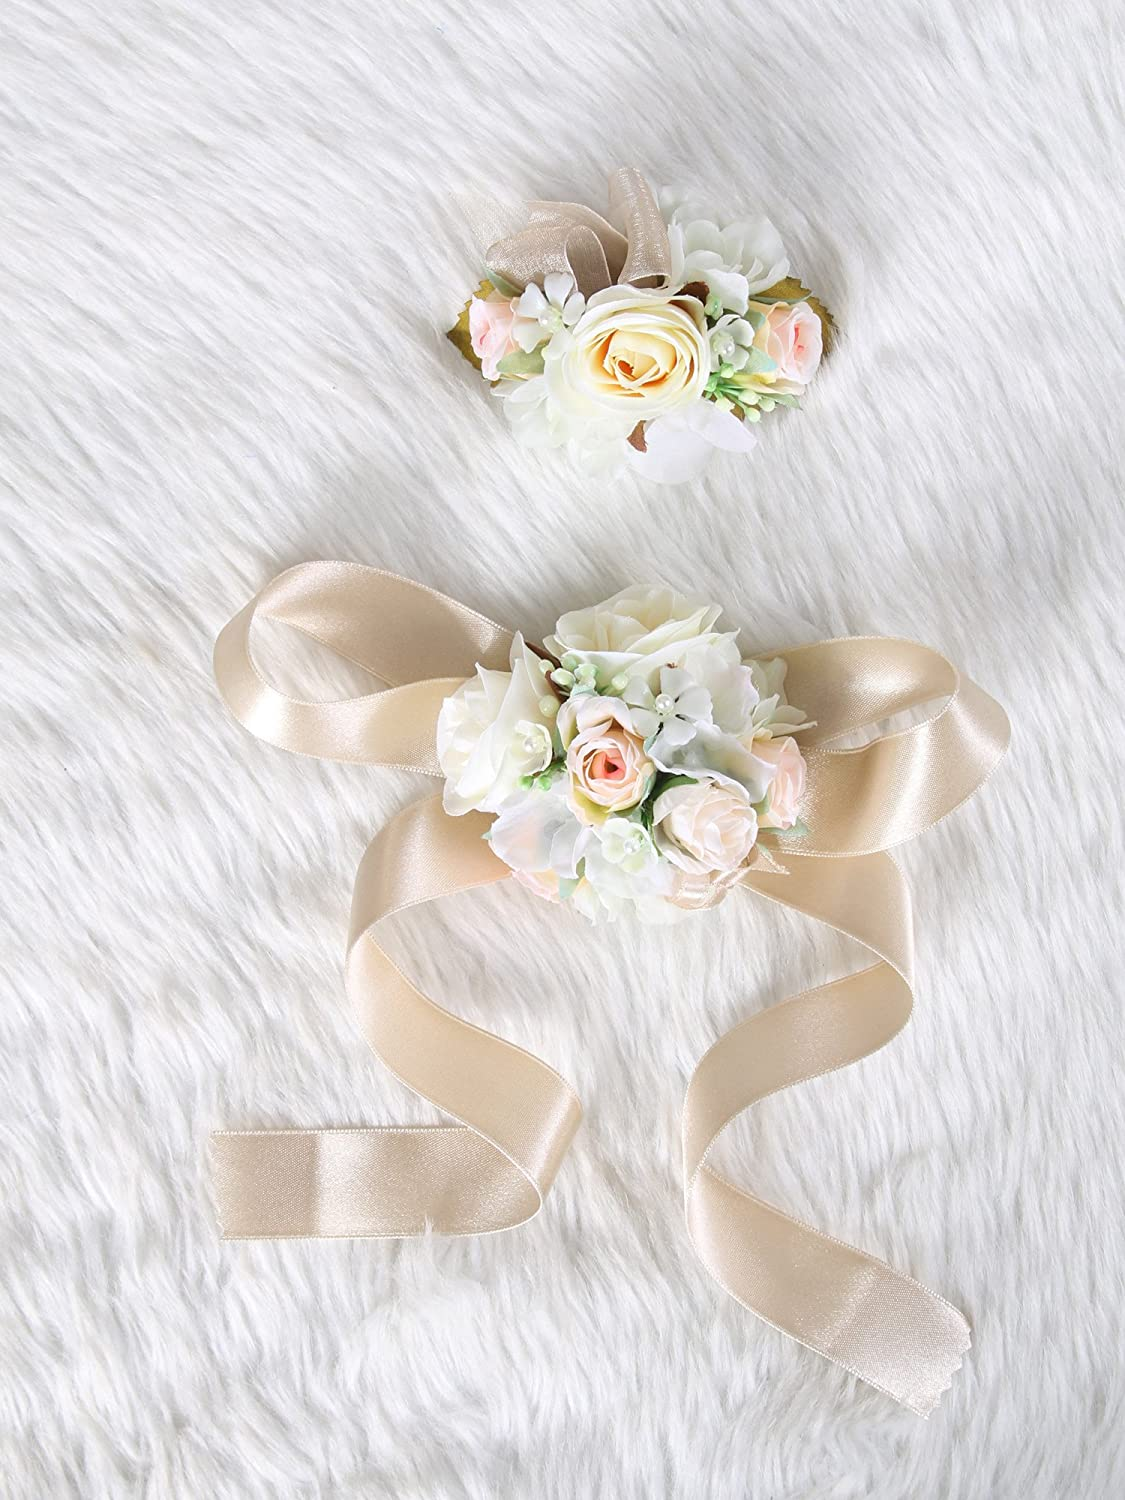 Beige theme Wedding Prom Wrist Corsage Silk rose and Boutonniere Set Pin Ribbon Included